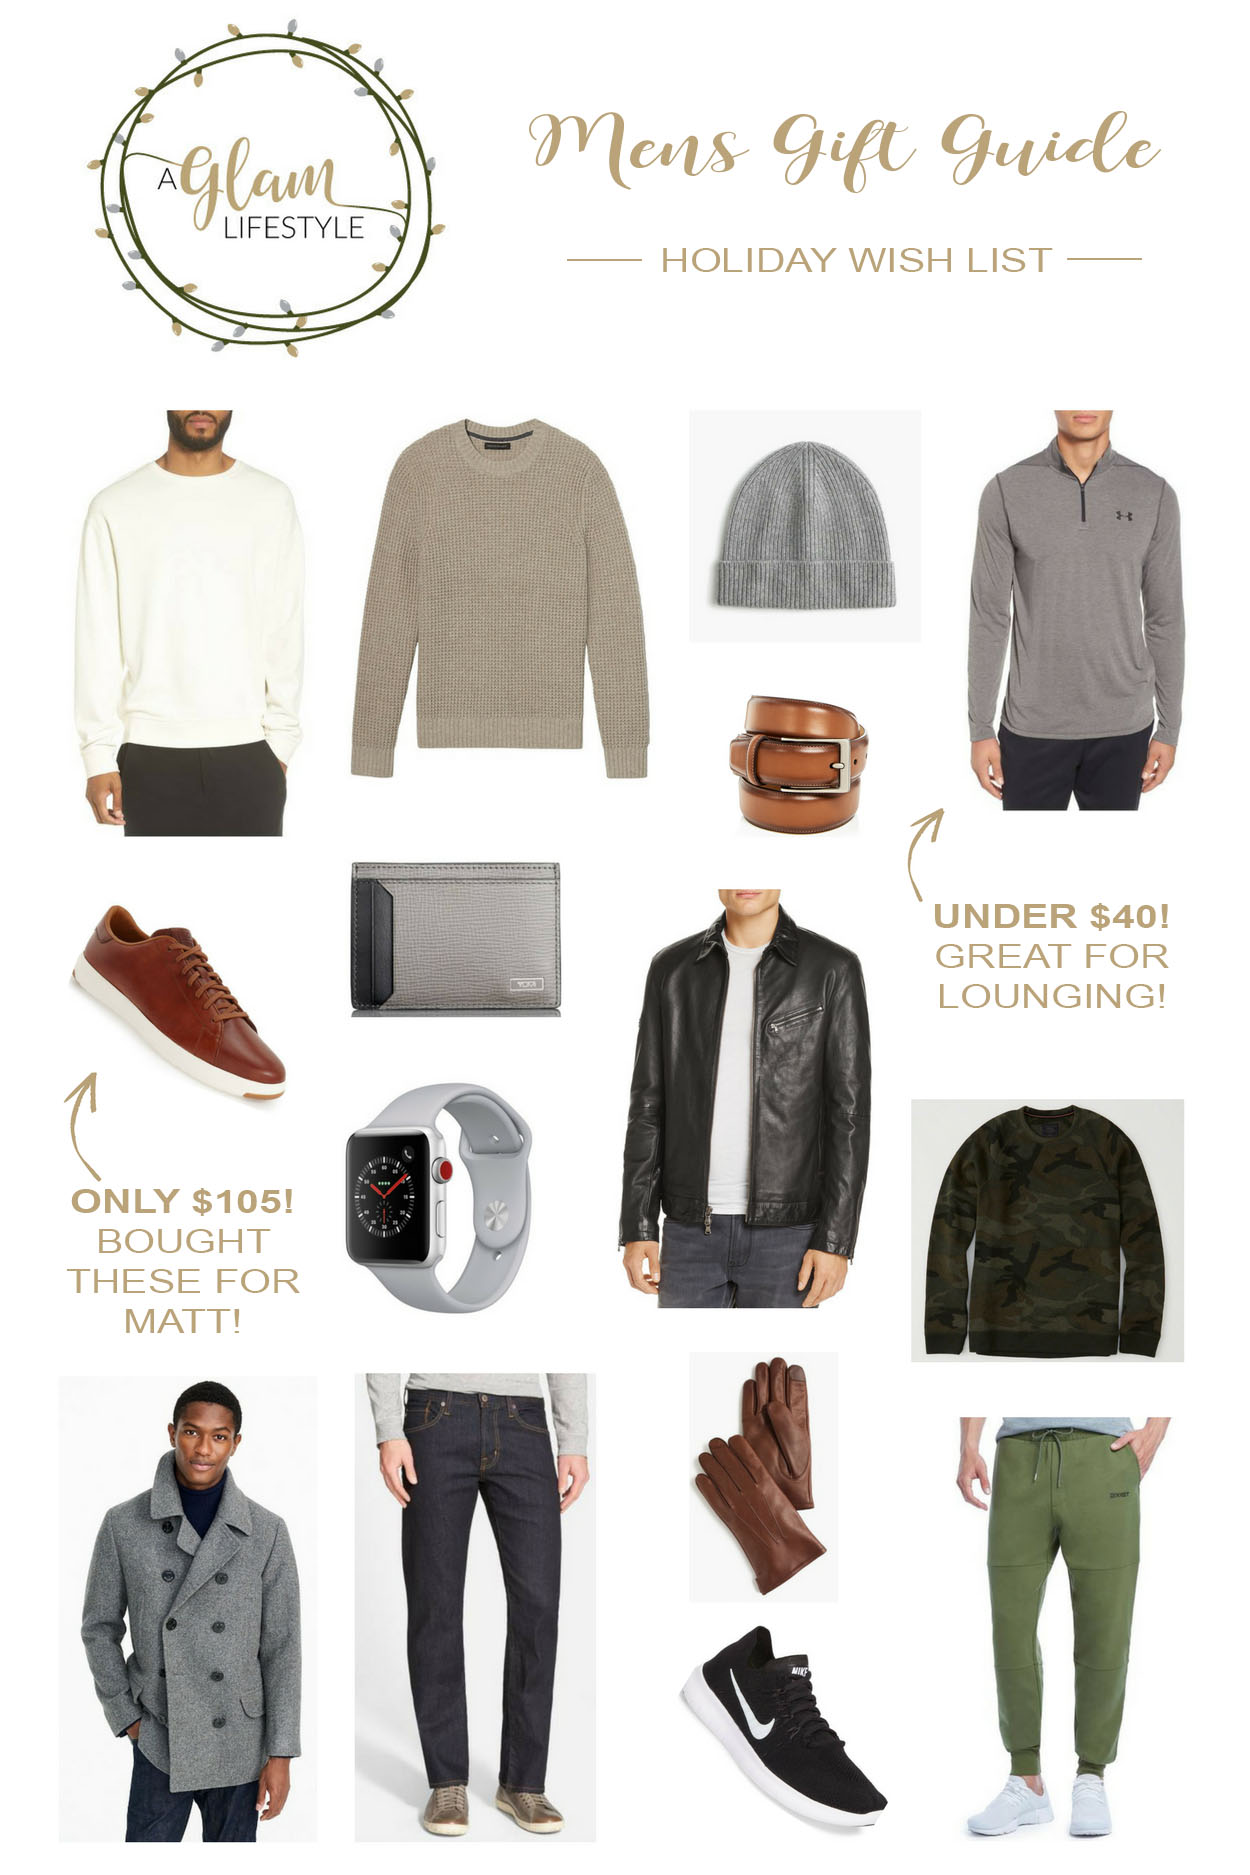 The 2017 Best Men's Gift Guide with items hand picked by South Florida fashion blogger Amanda of A Glam Lifestyle